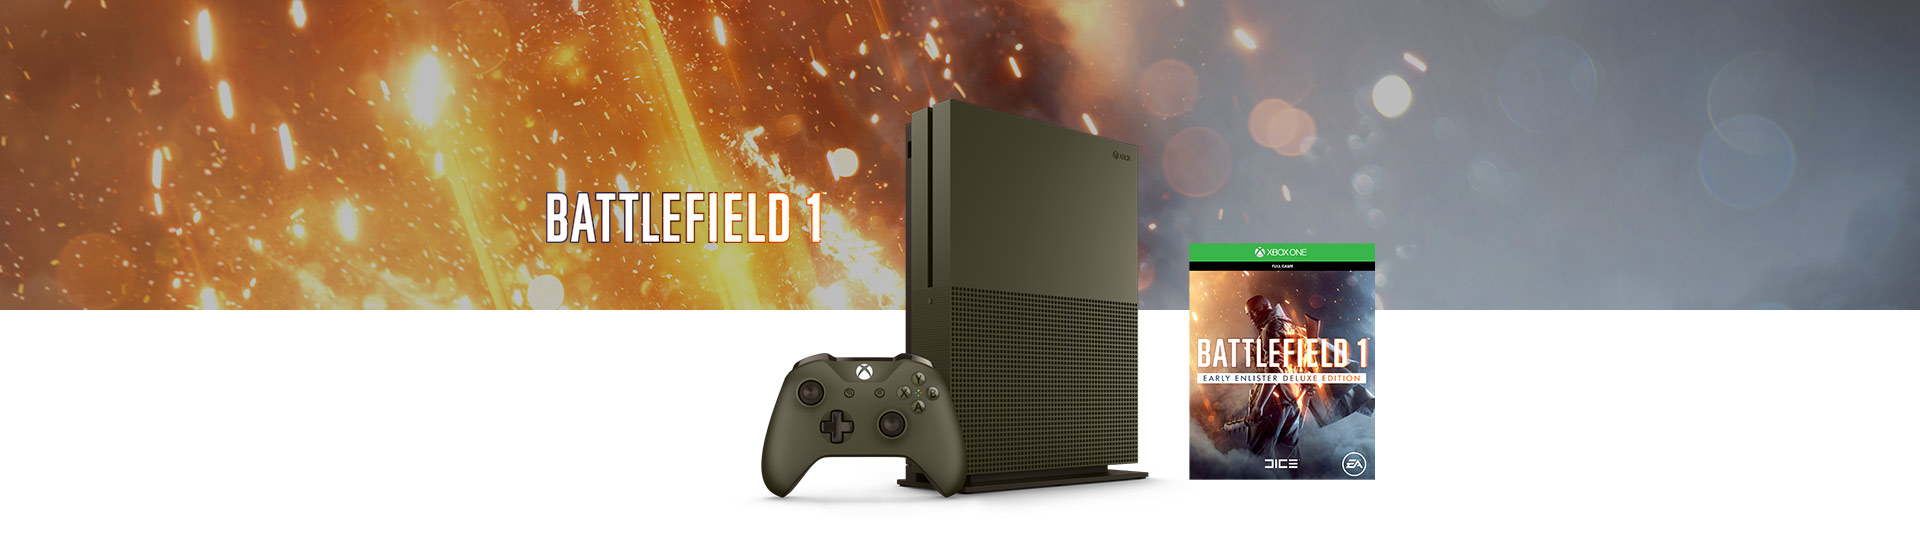 Battlefield 1 1TB green console bundle